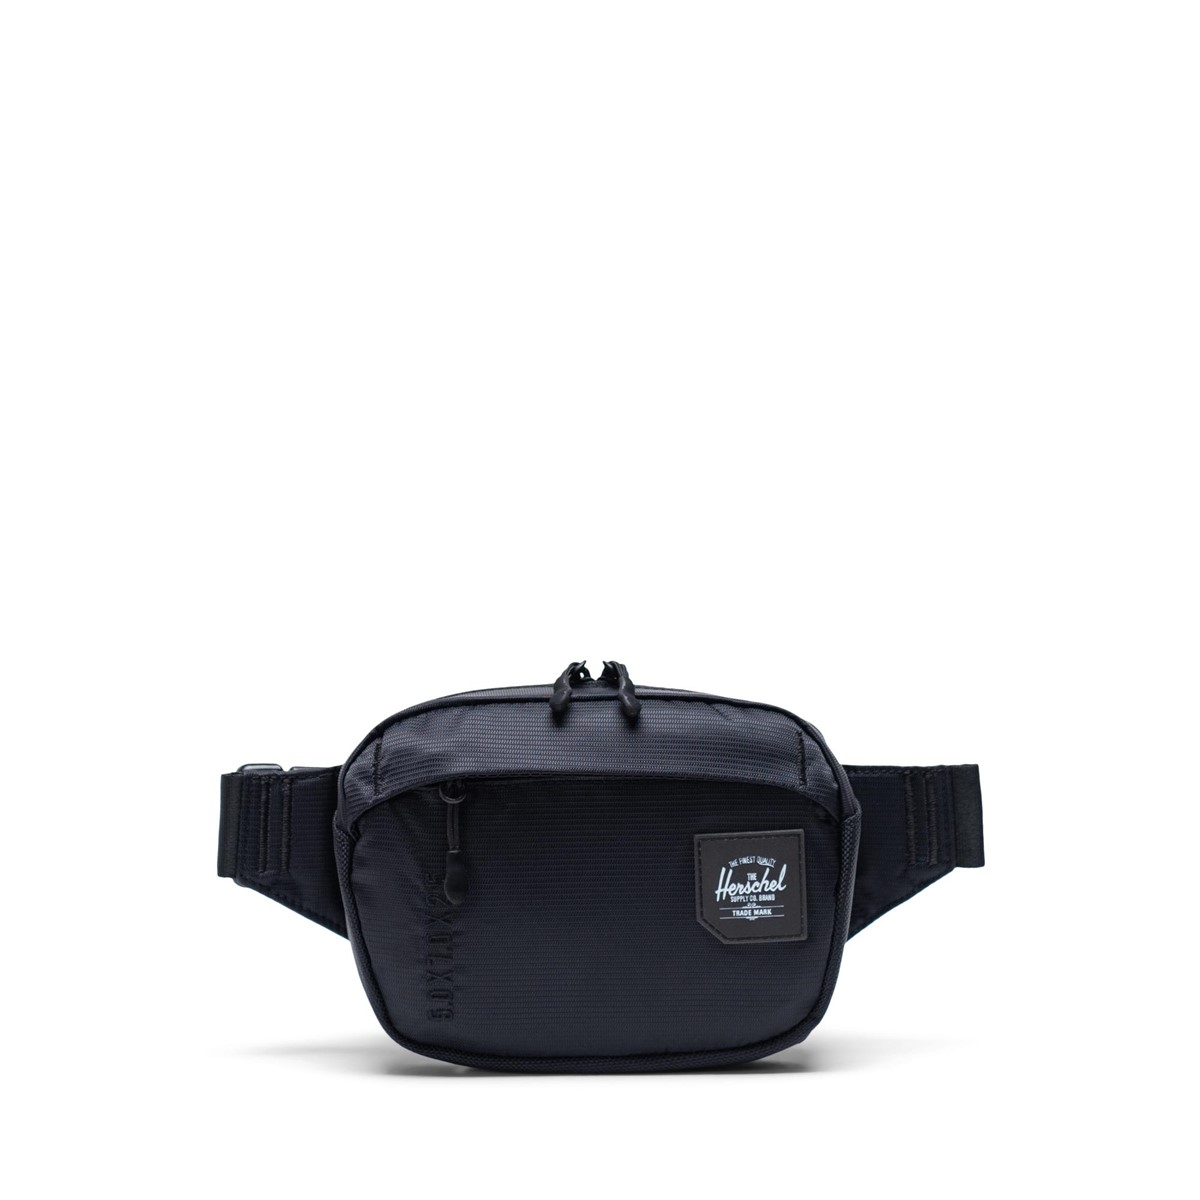 Tours Small Crossbody Bag in Black